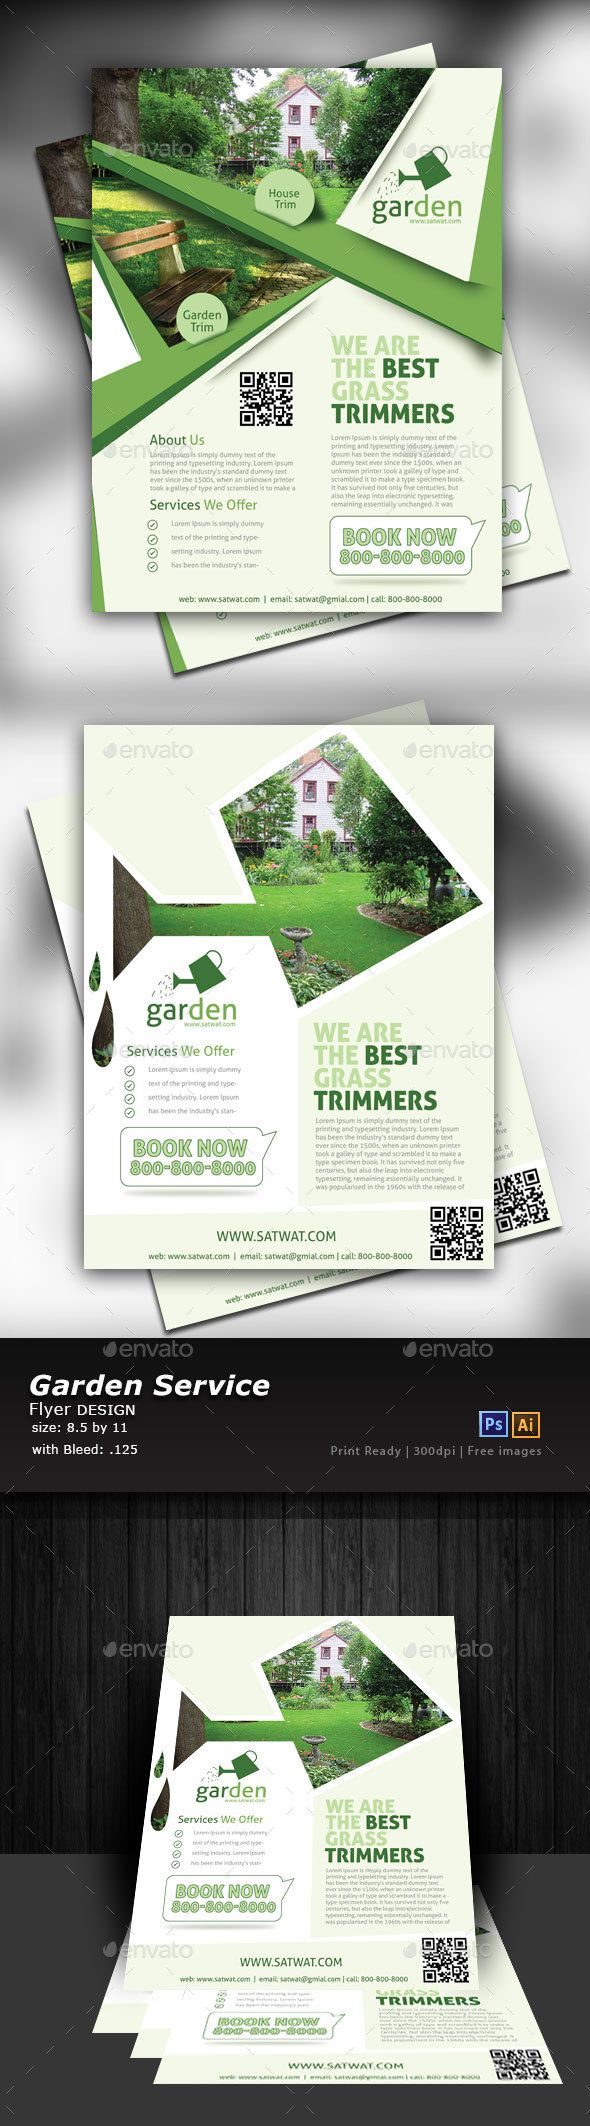 Lawn Care Flyer Templates Psd Vector Eps Ai Illustrator Flyer